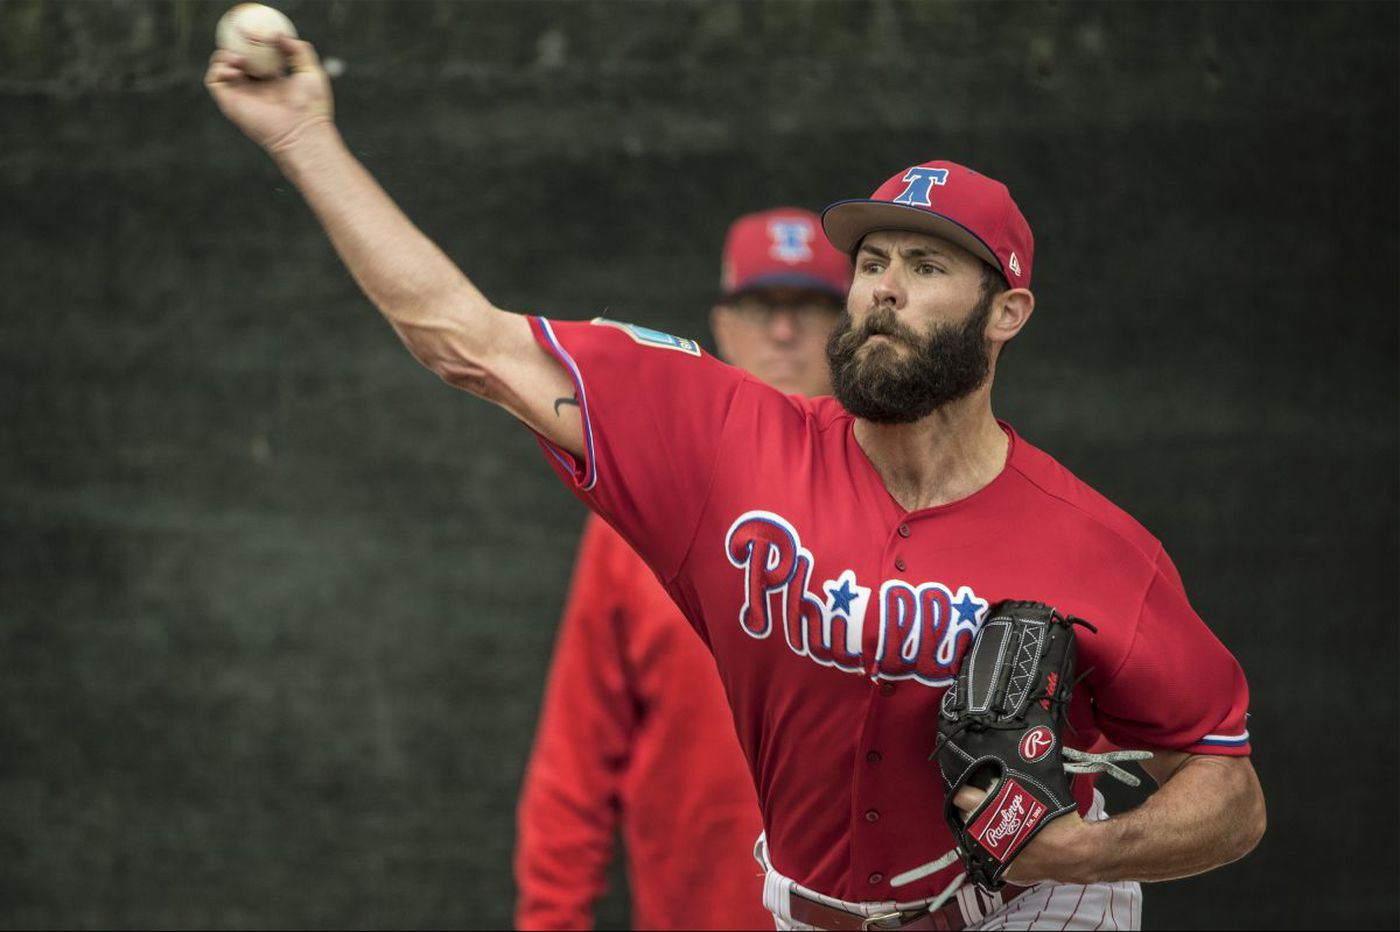 How to watch Jake Arrieta's Phillies spring training debut